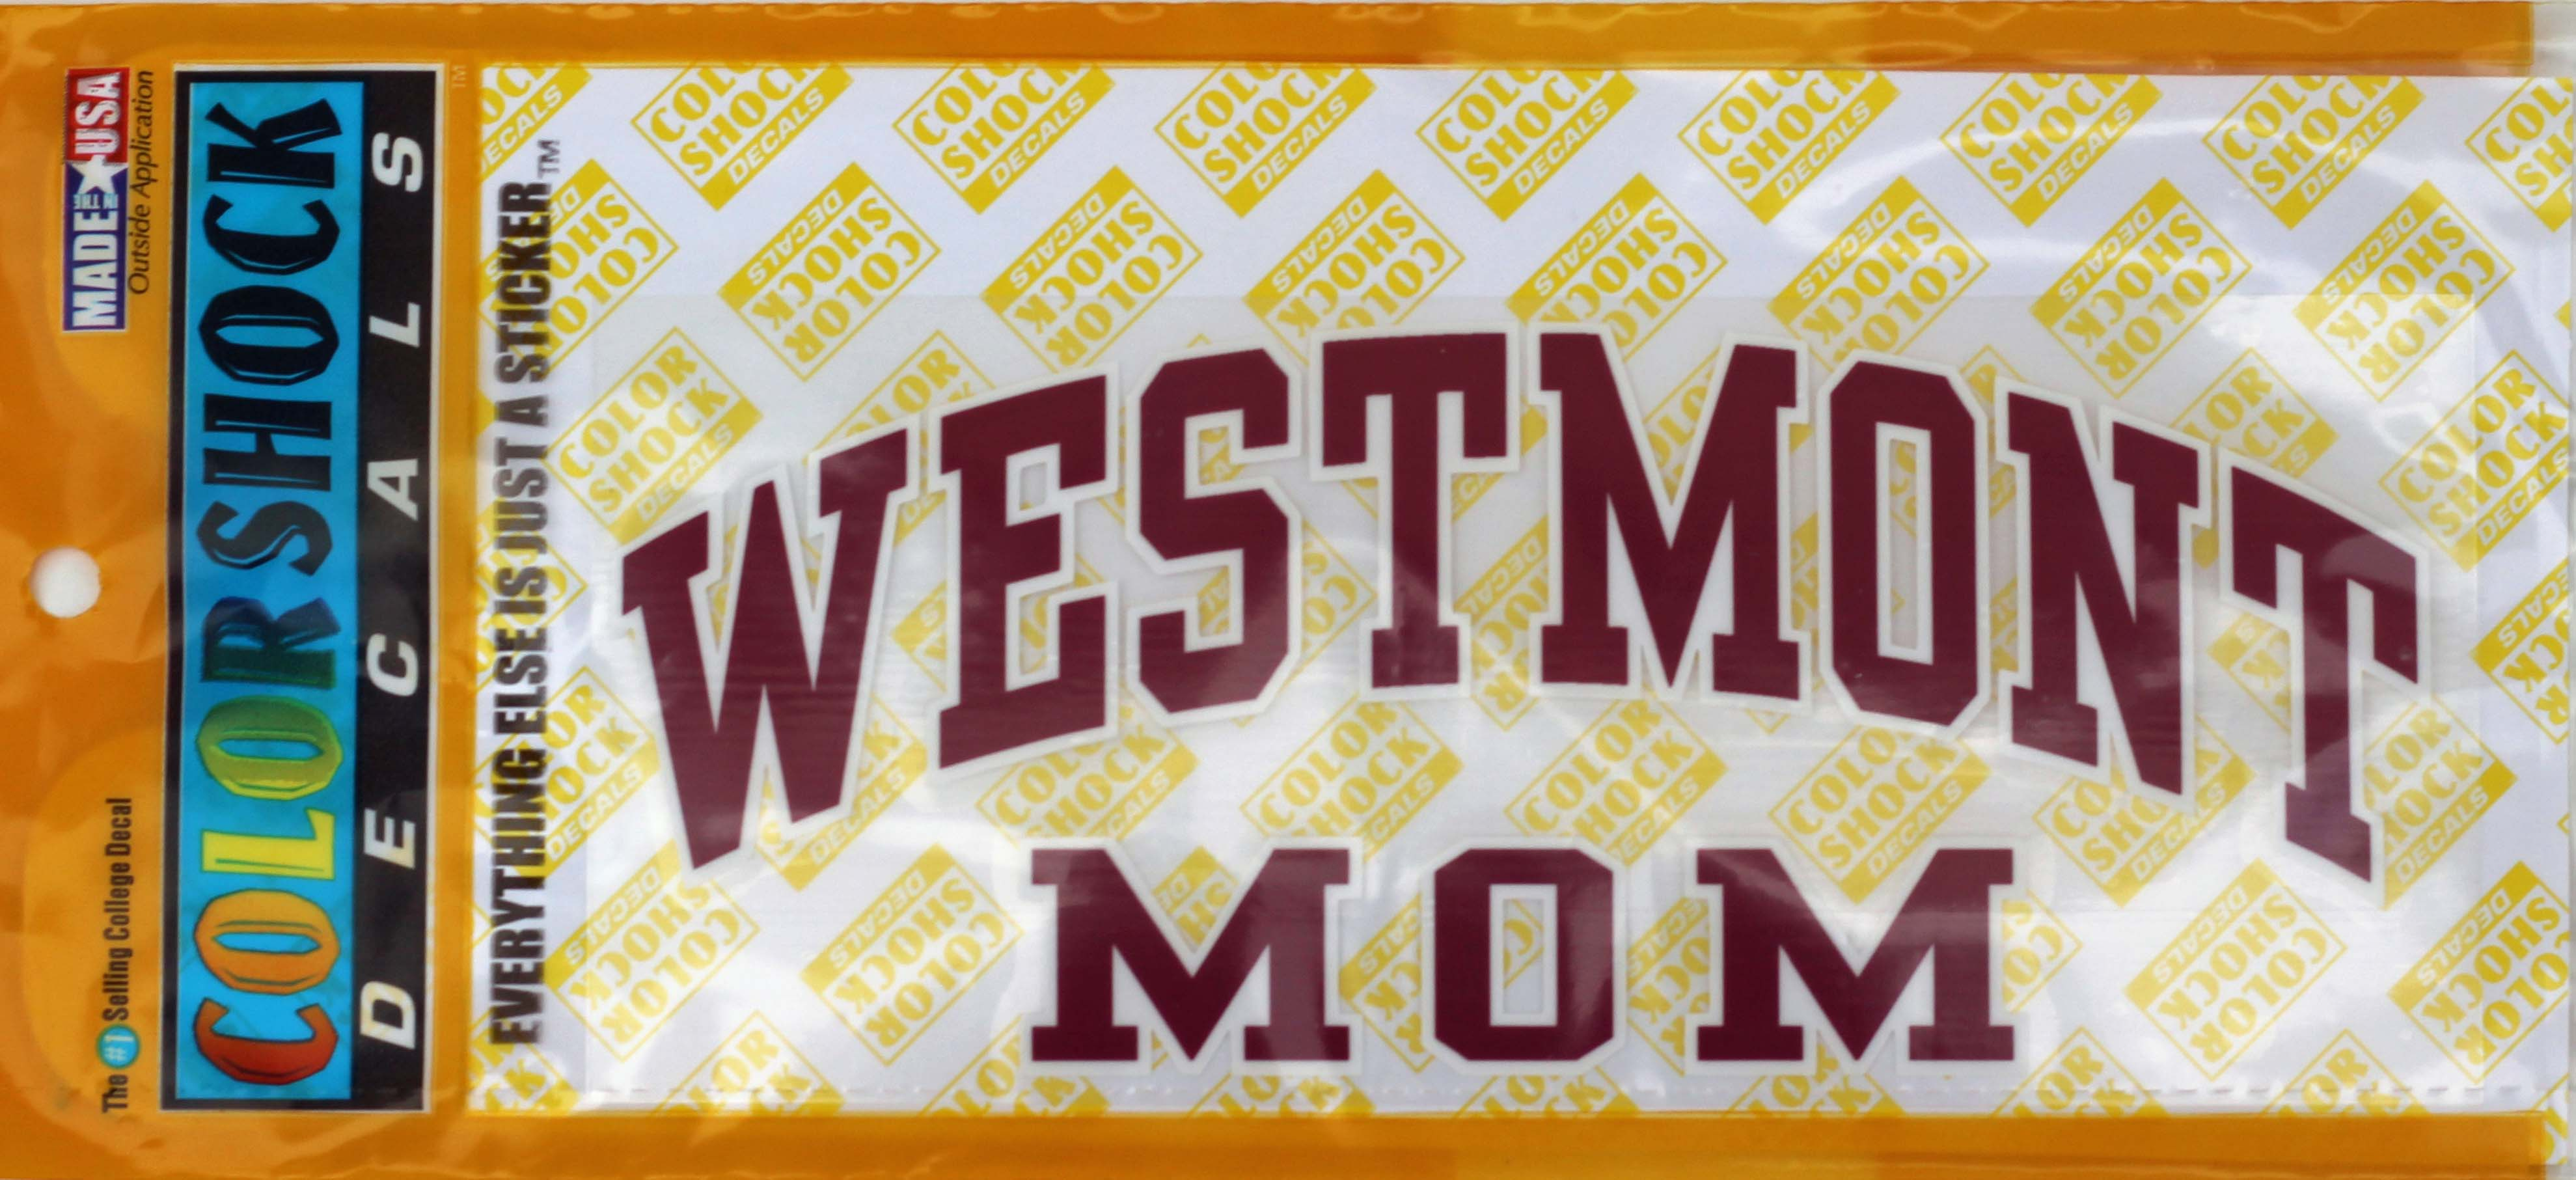 Image for the Color Shock Westmont Mom Decal product